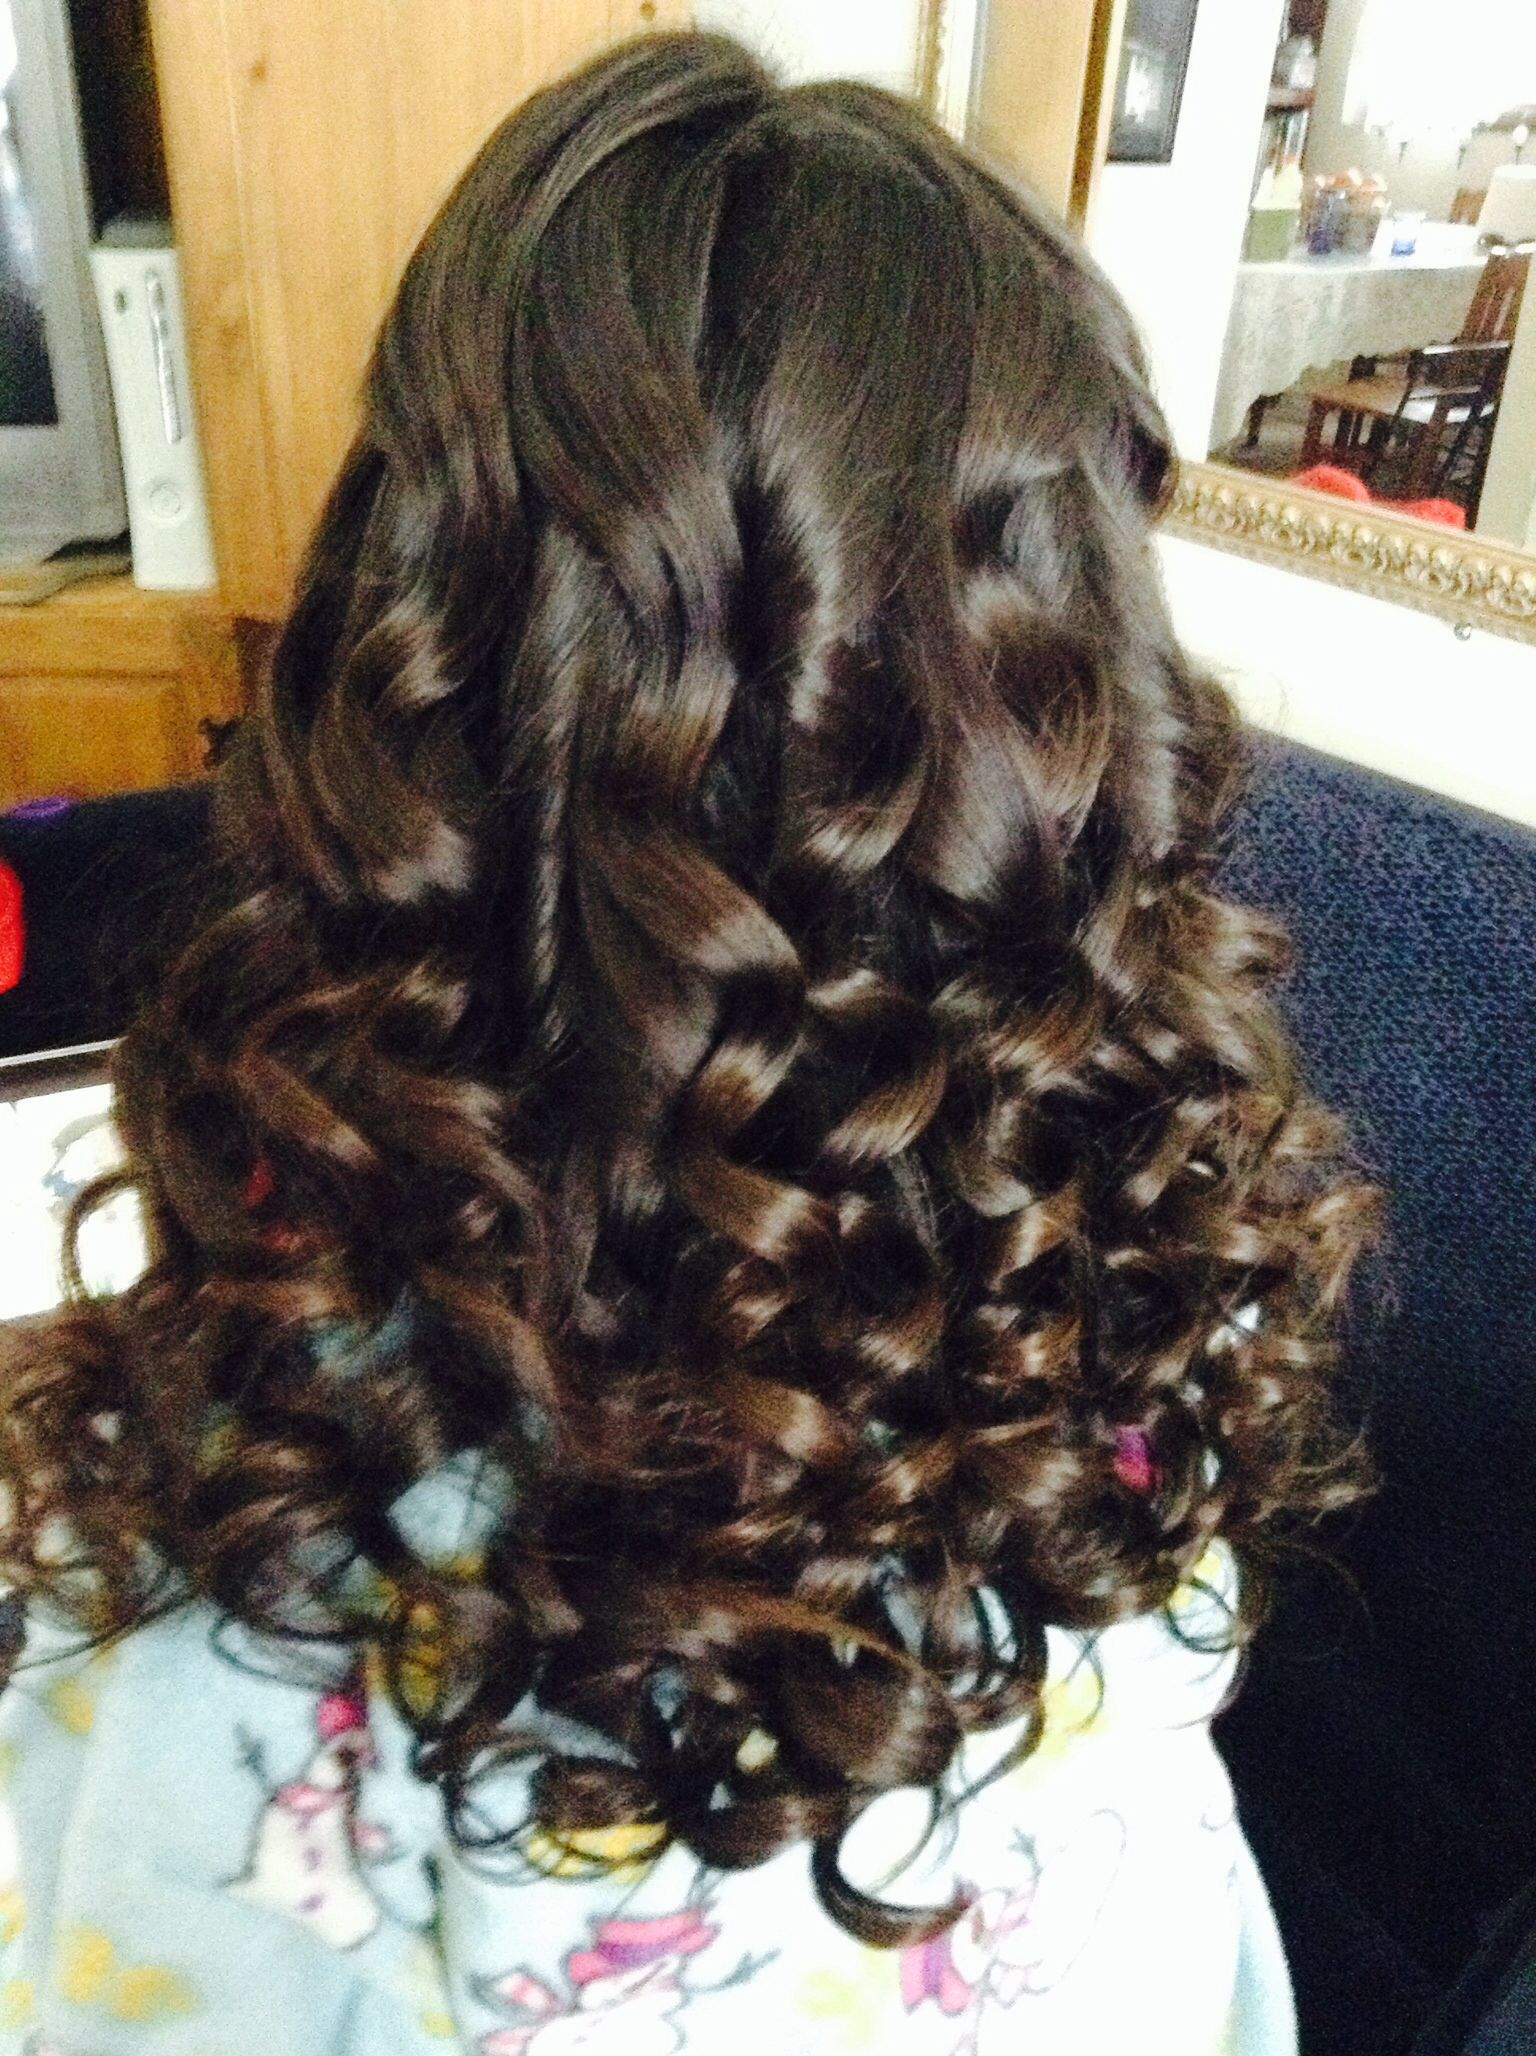 All over curls done with cone shaped curling iron